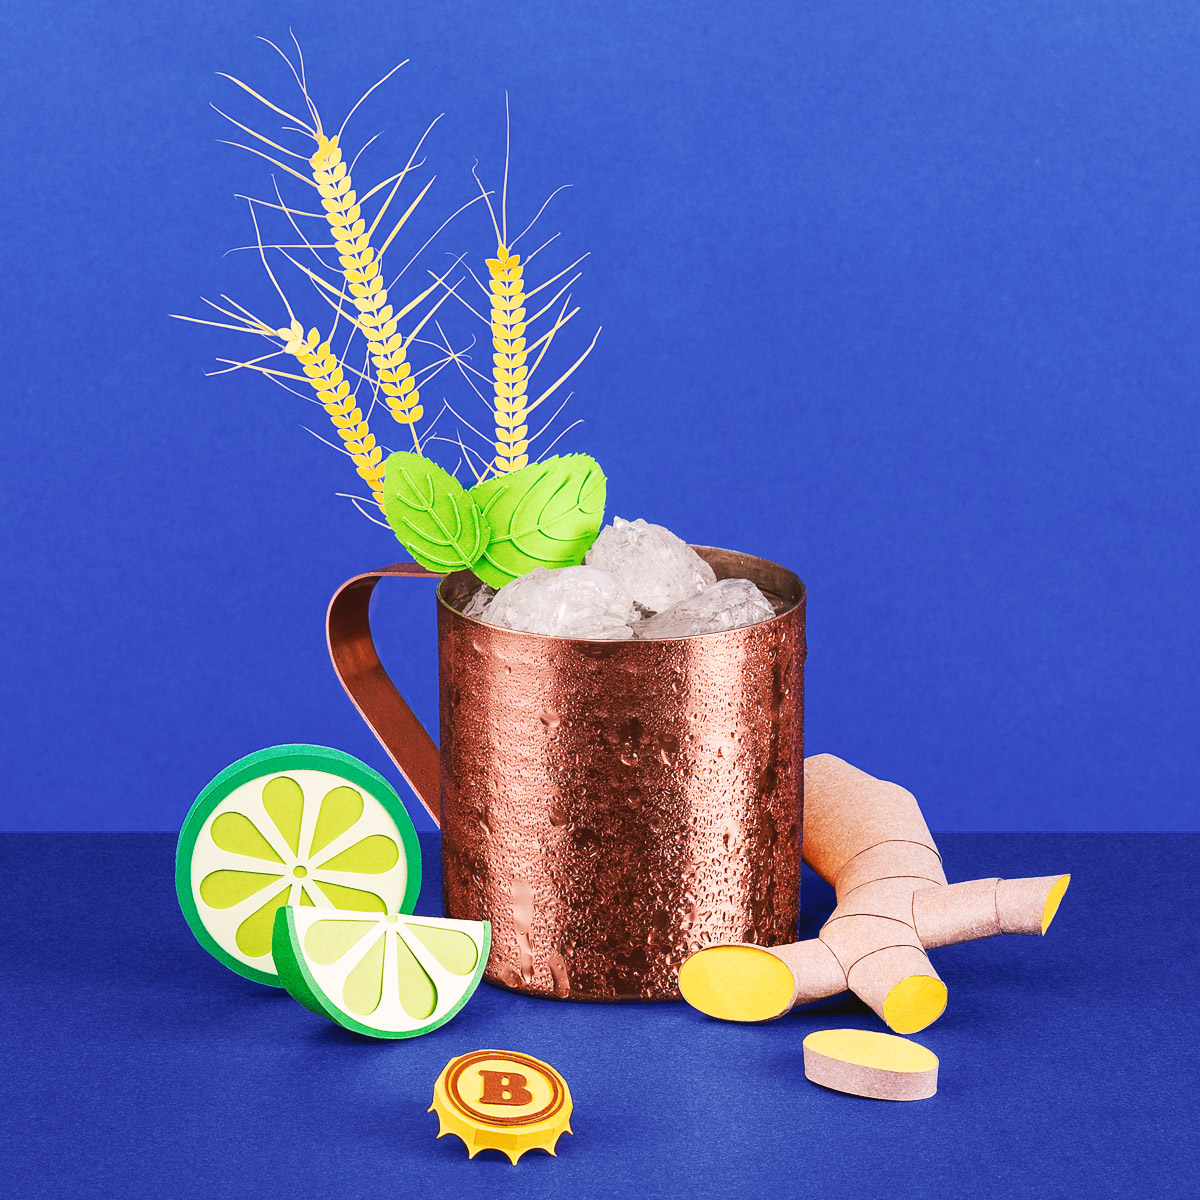 Pause Apéro Paper Illustrations of the Hottest Summer Cocktails by Get It Studio